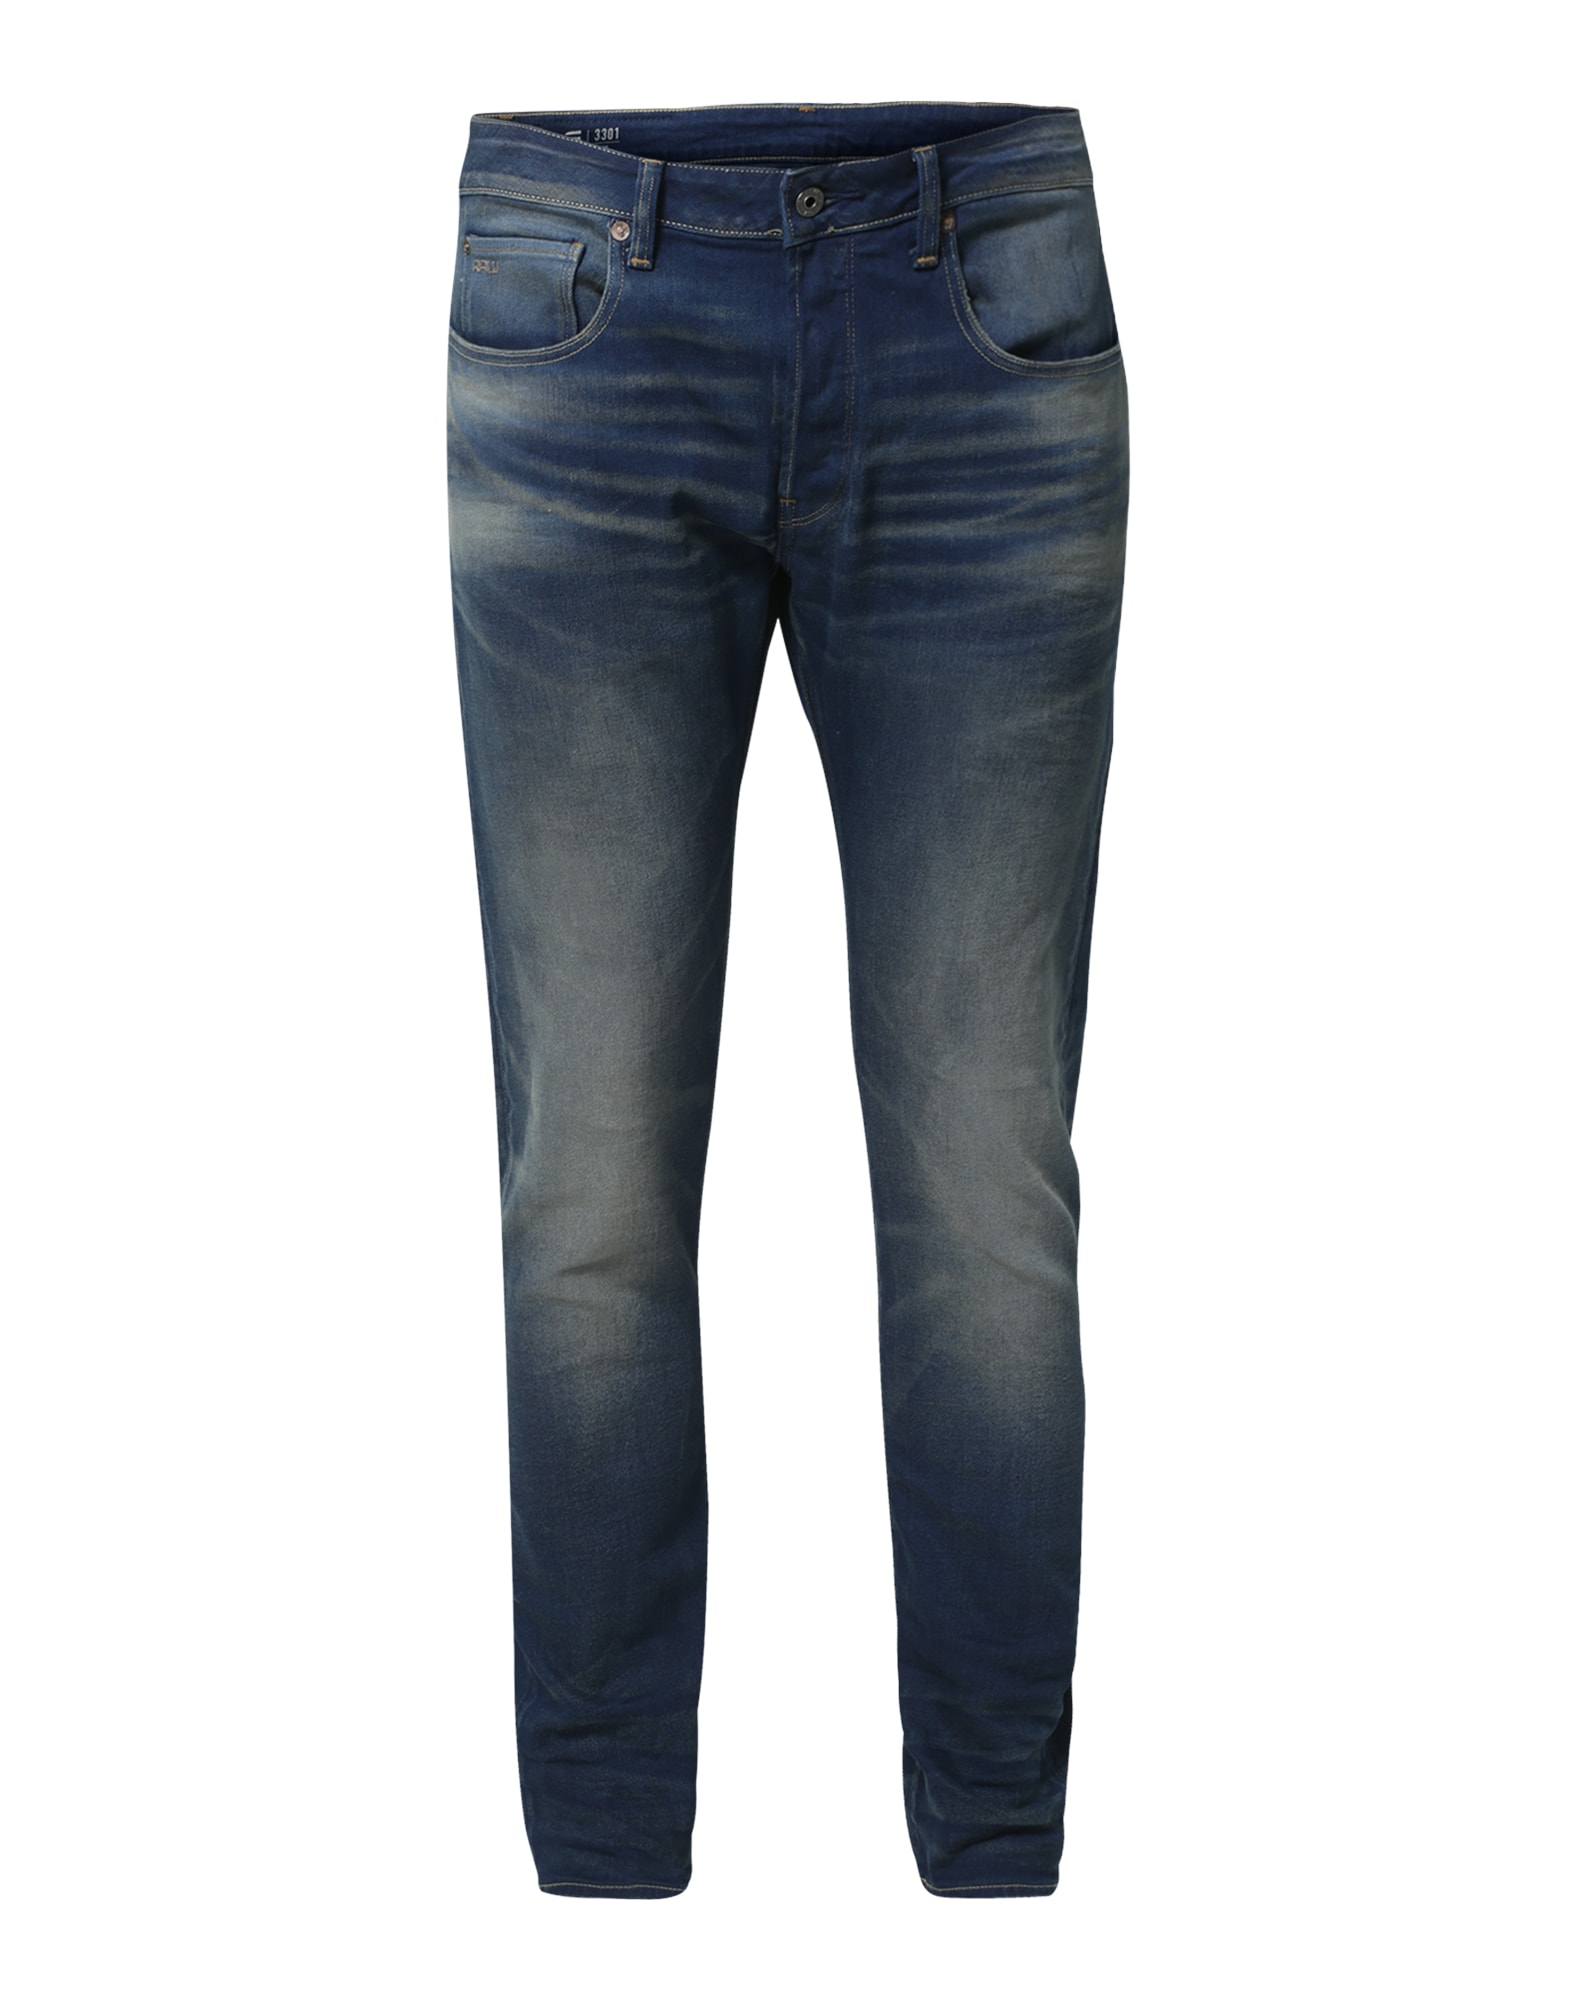 G-STAR RAW Heren Jeans 3301 Slim blauw